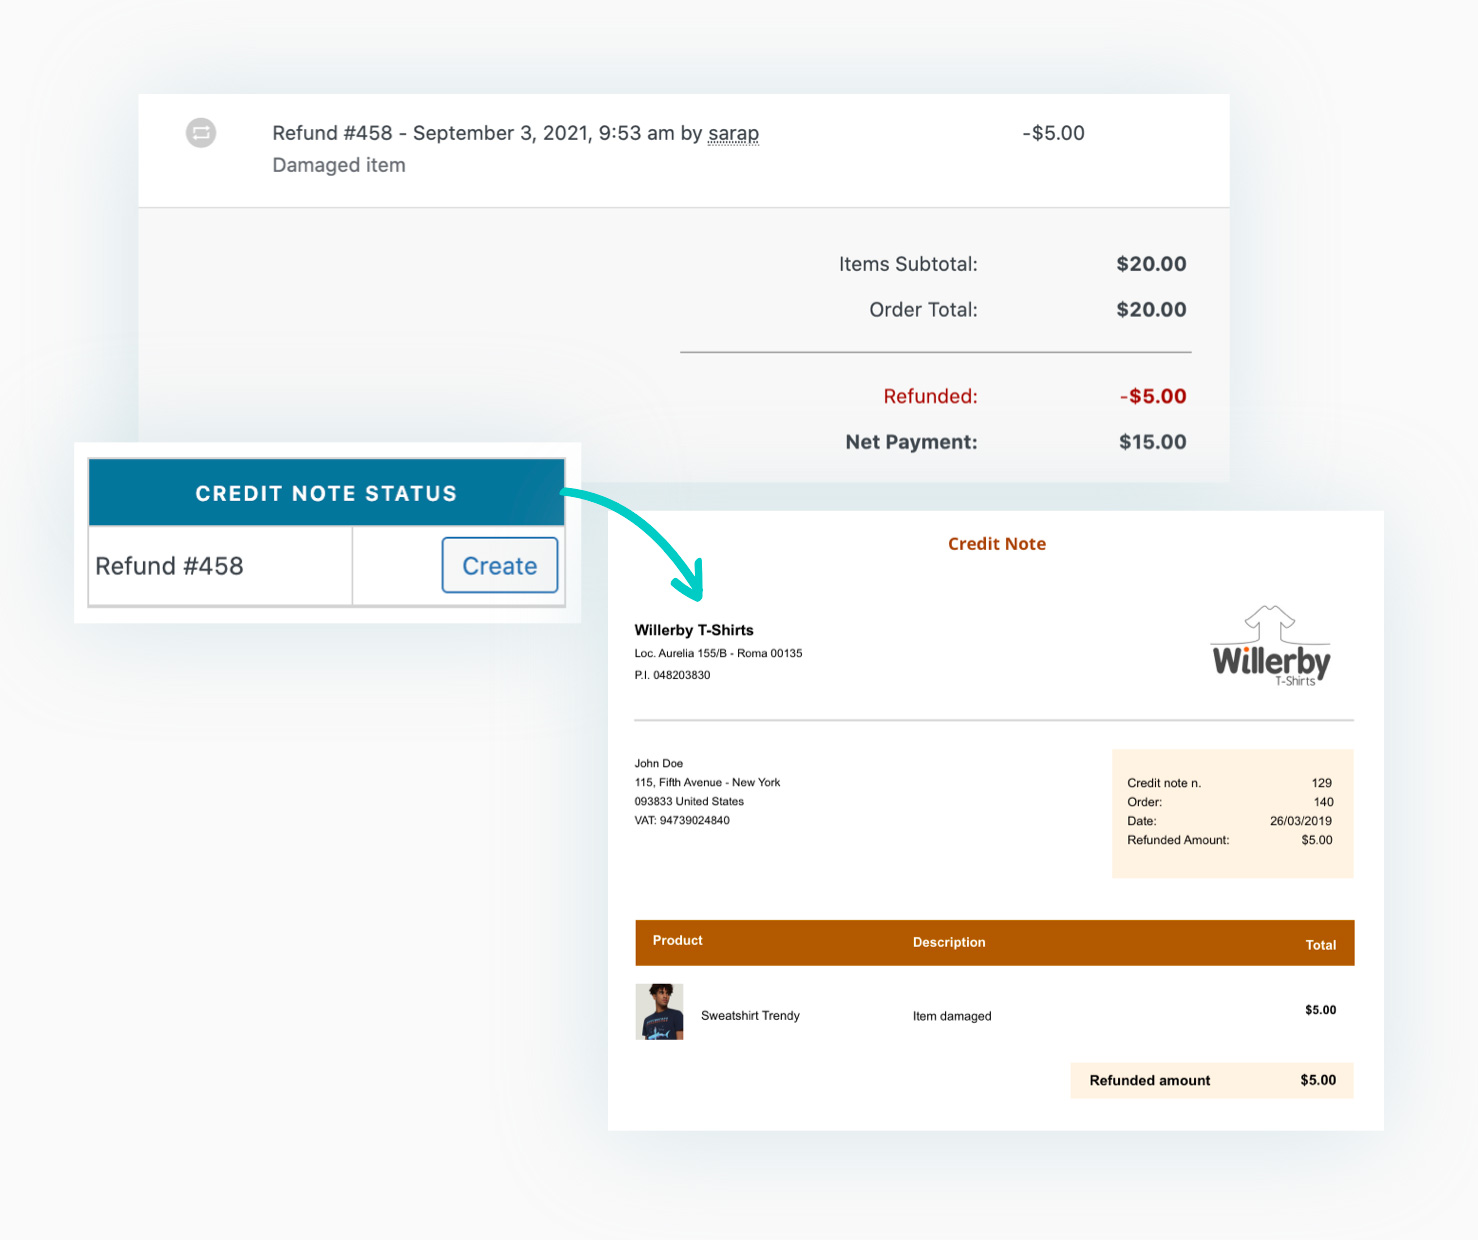 YITH-WooCommerce-PDF-Invoices-Packing-Slip-Credit-Notes-Invoices-Refunds